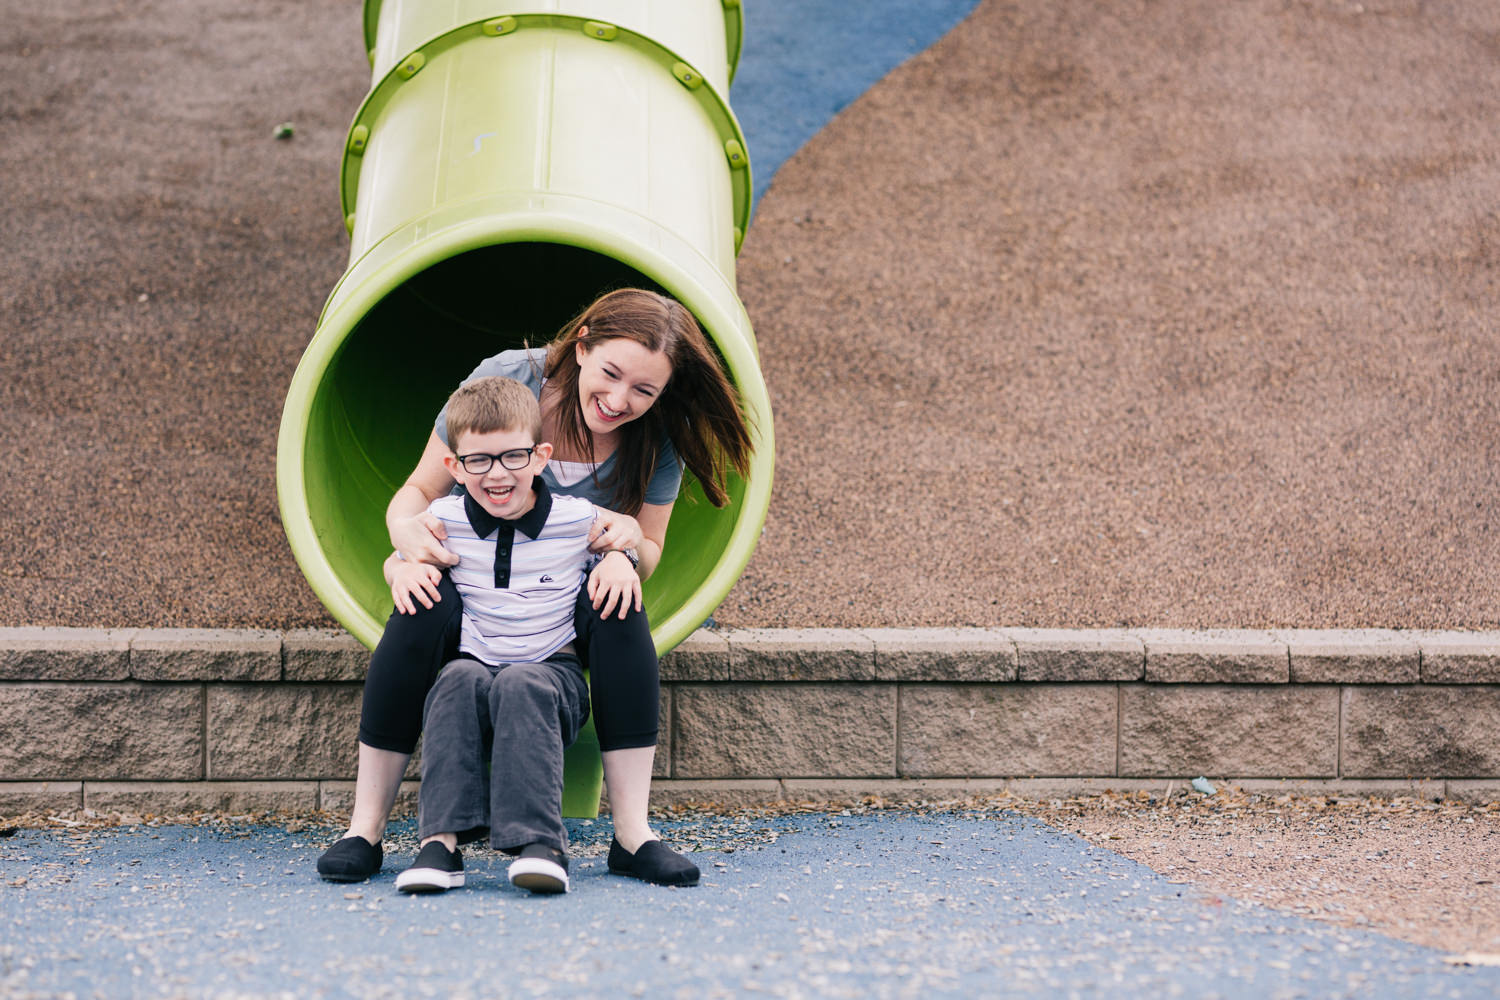 quilchena-park-family-photography-quilchena-park-lifestlye-family-photographer-julie-dorge (9 of 56).jpg